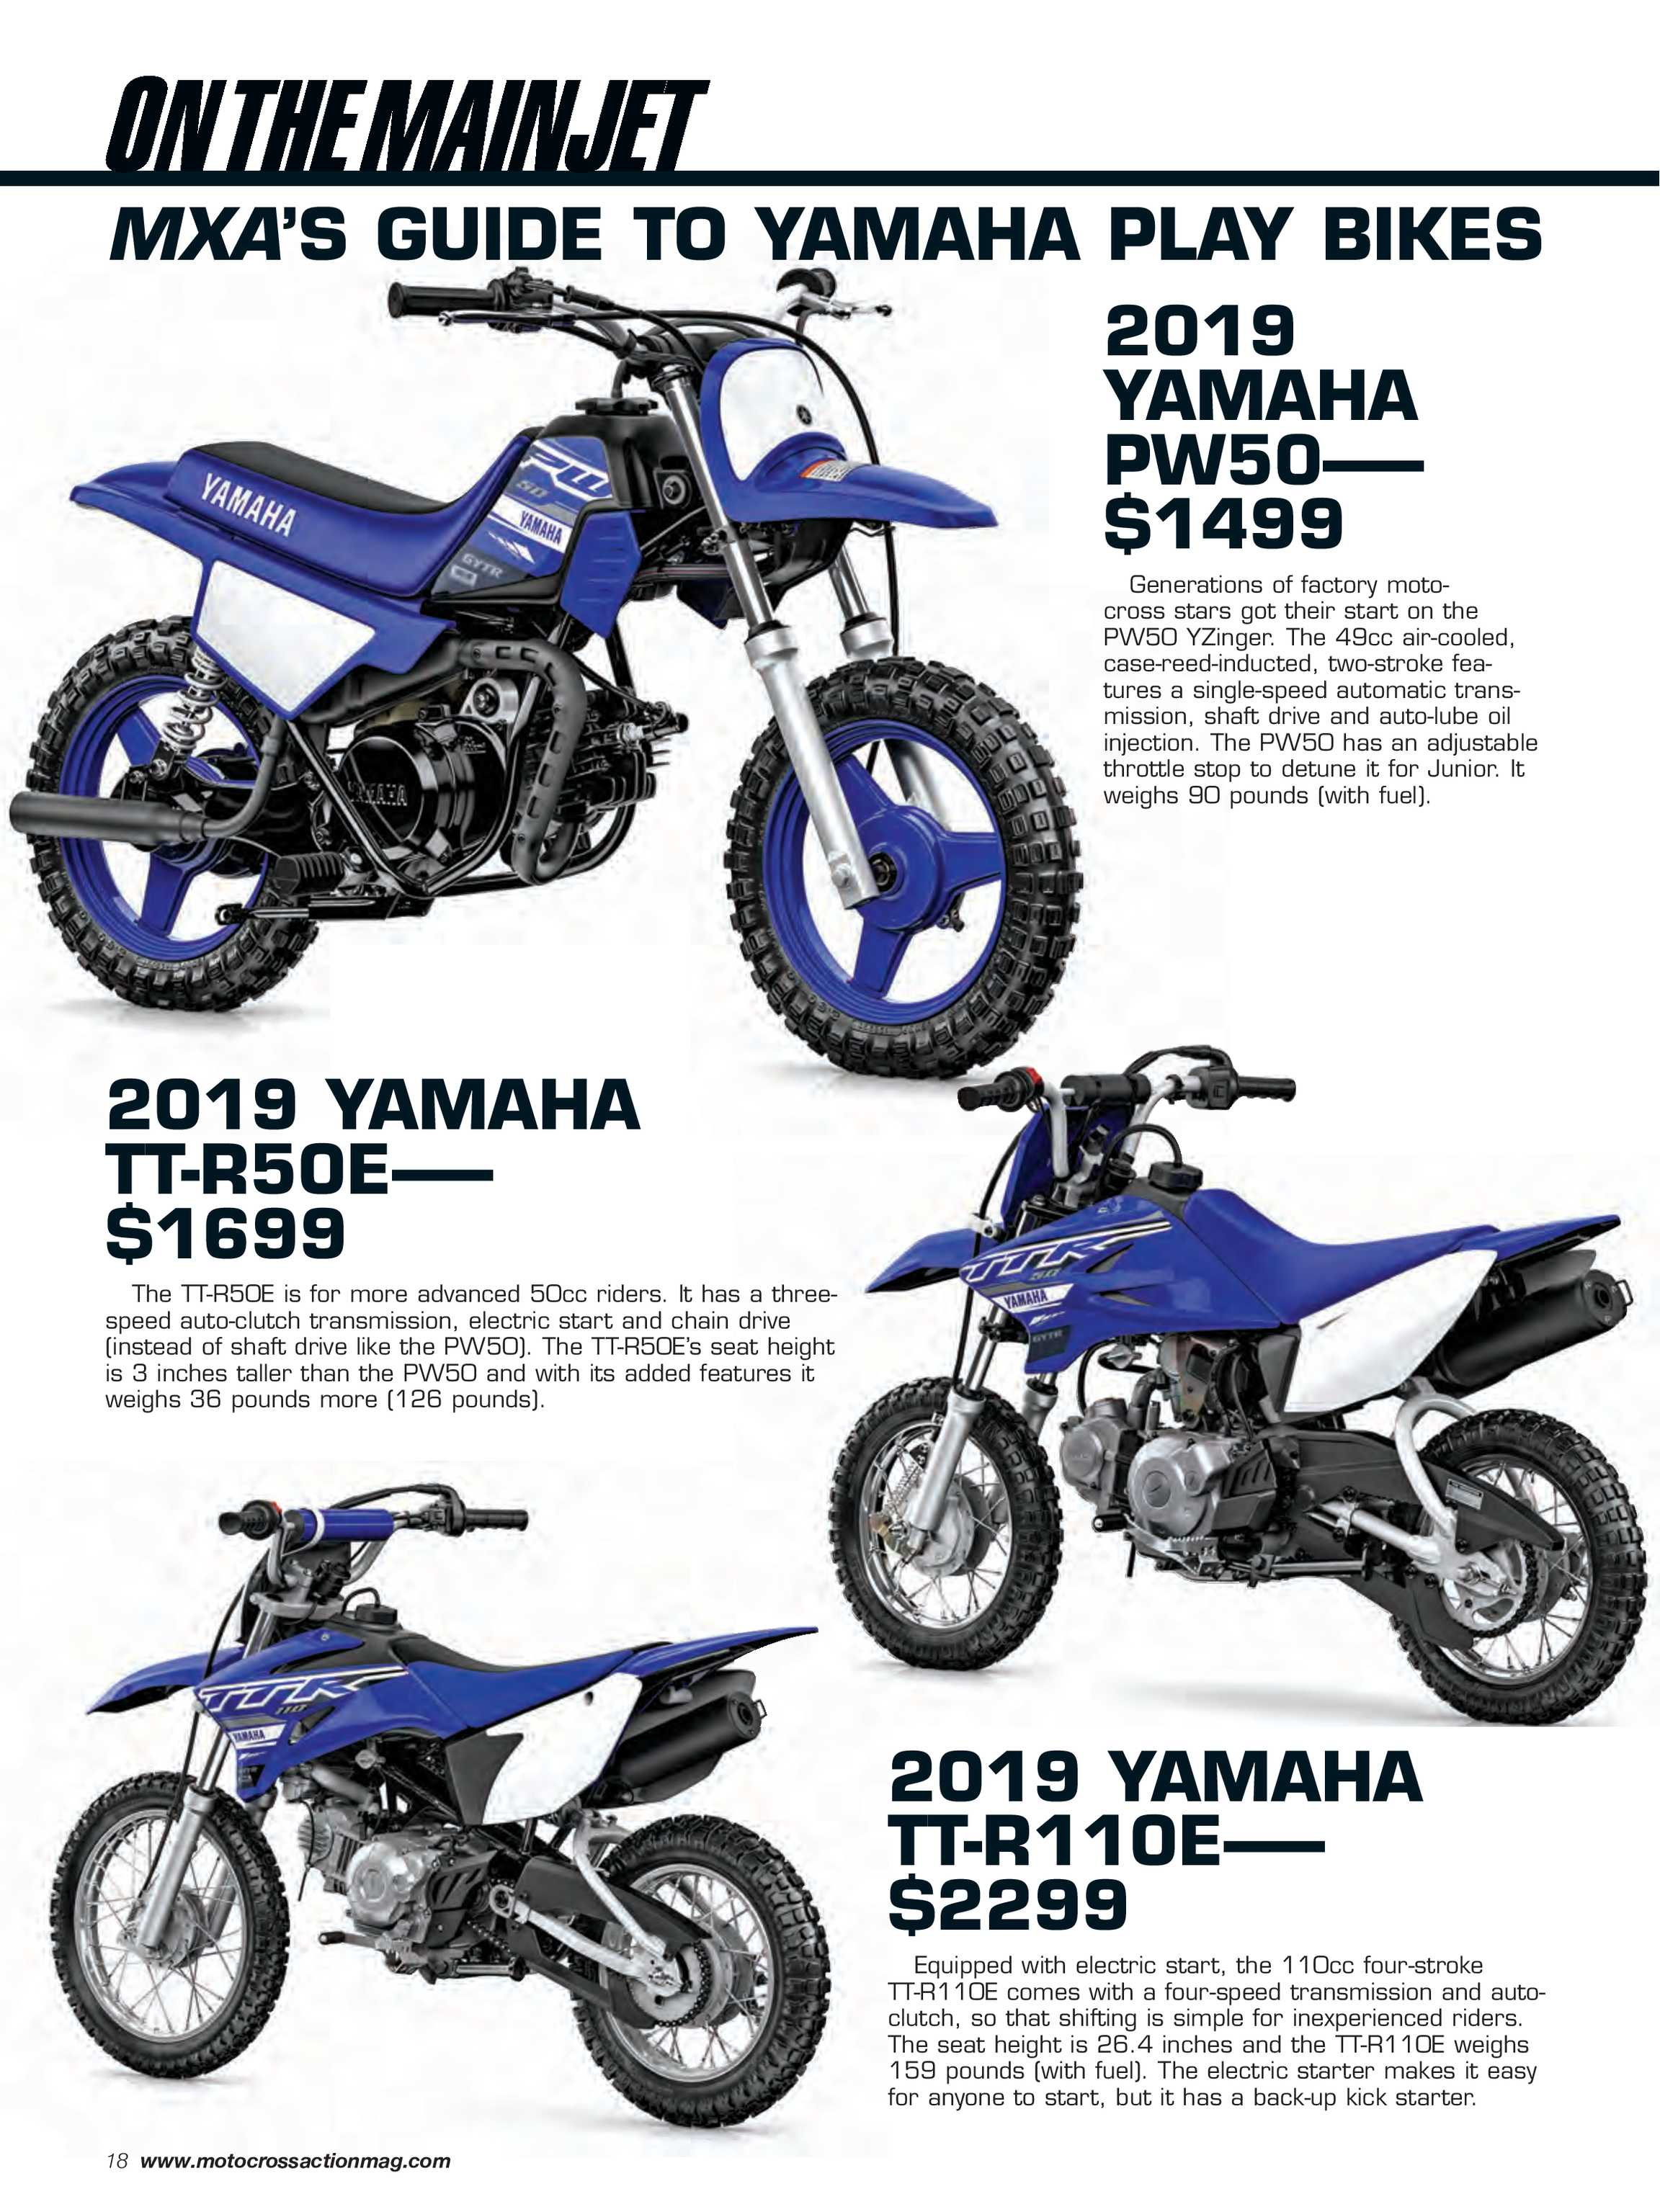 Motocross Action Magazine - June 2019 - page 18